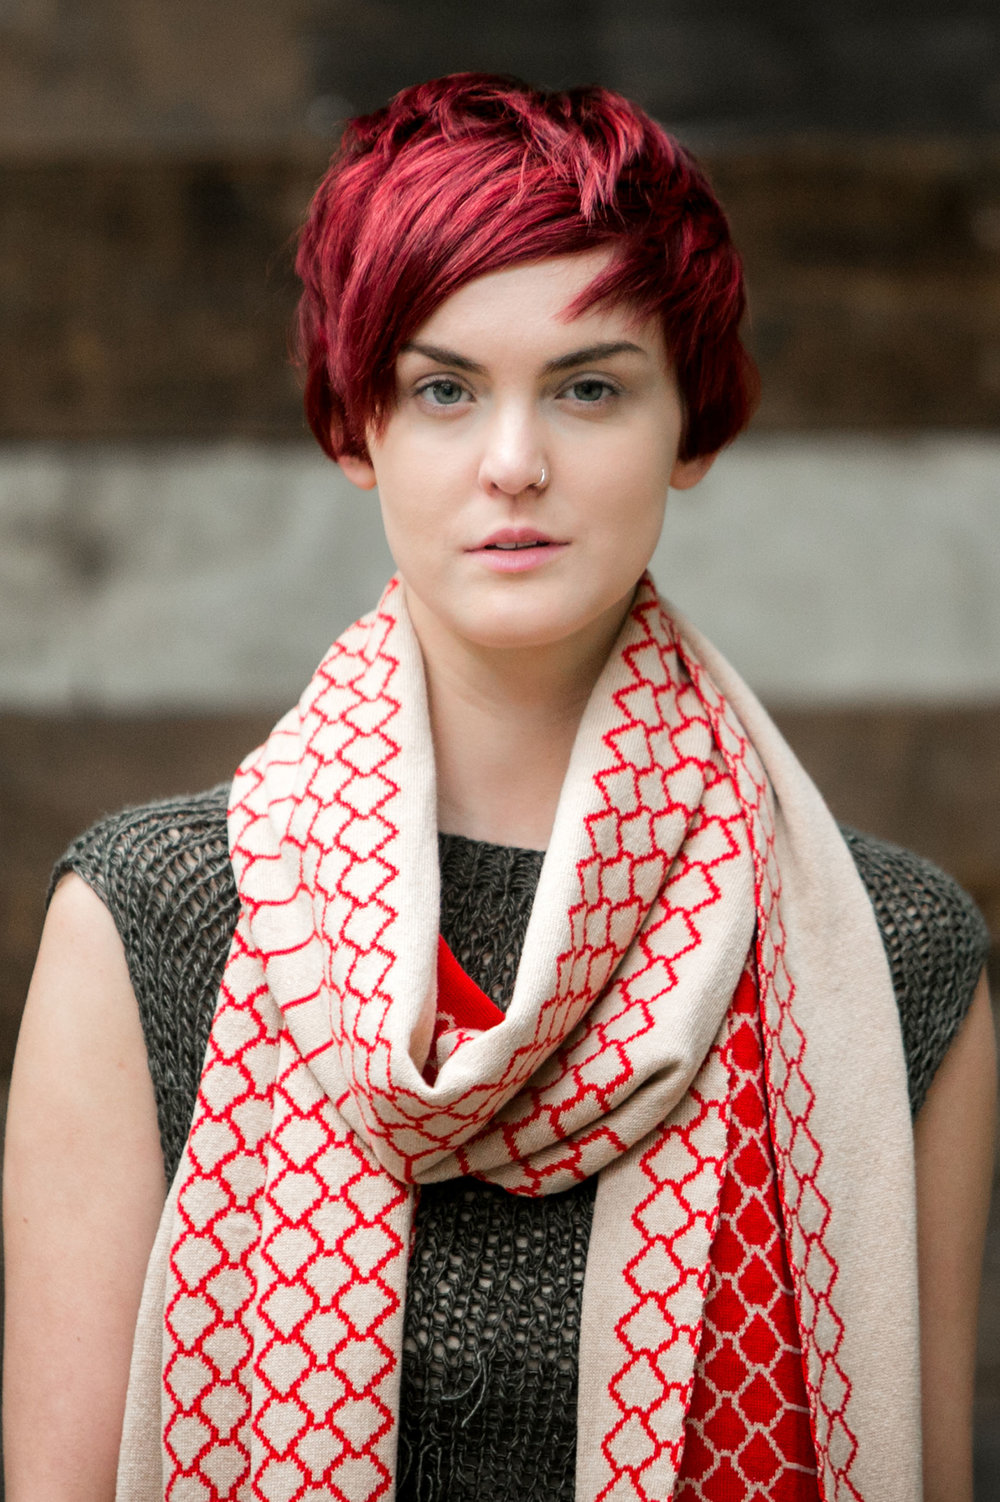 a37d2a520e061 Claire Andrew AW16 5 Detail Graphic Oversize Scarf Red Camel Print.jpg